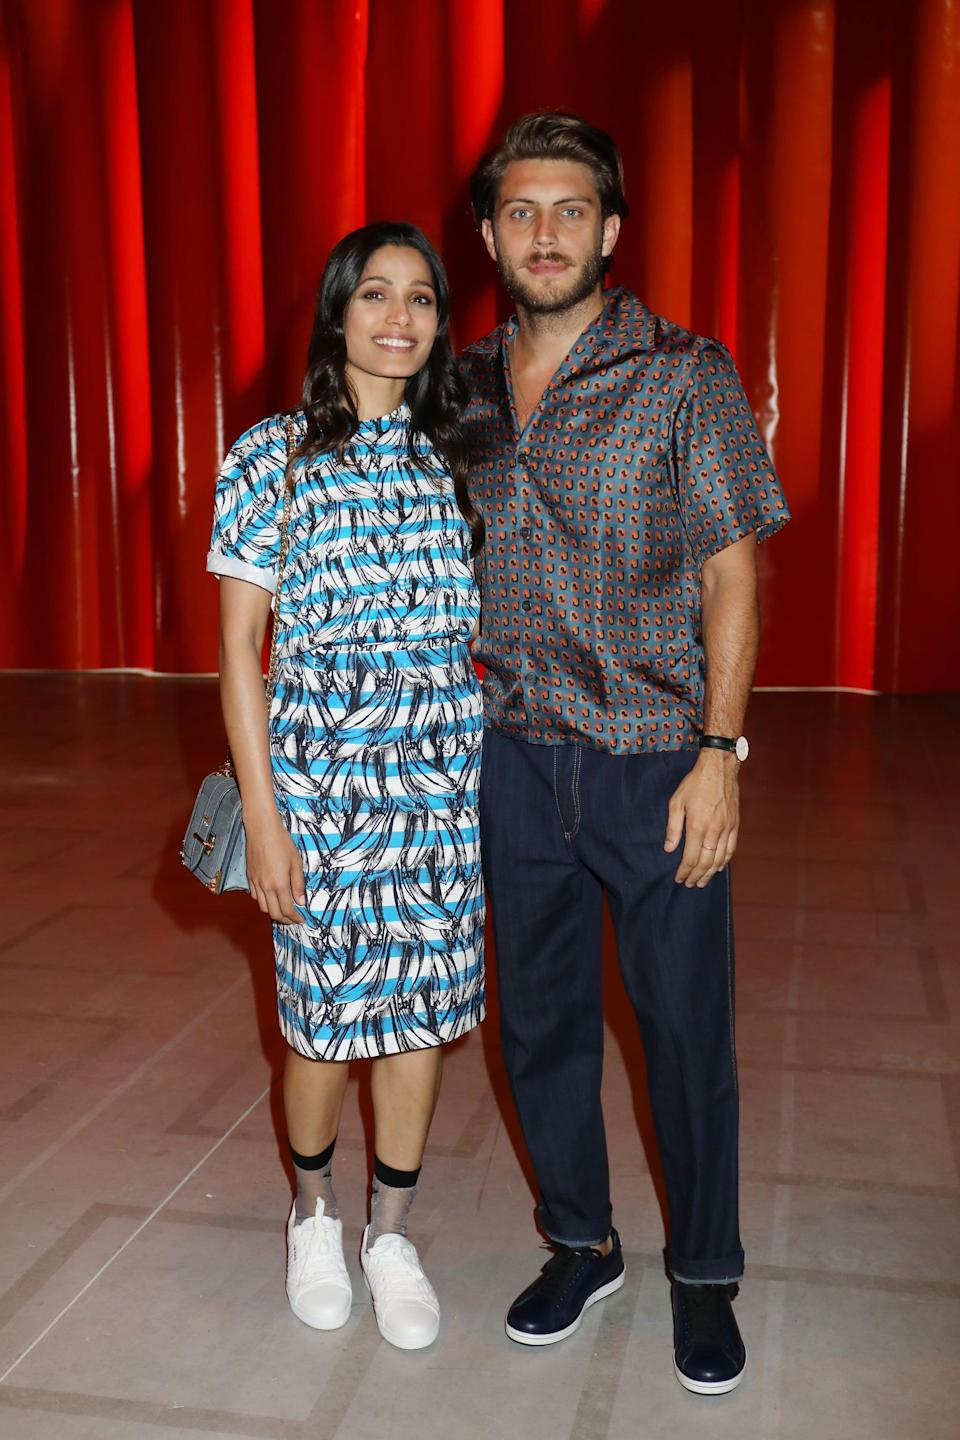 "<p>The <a href=""https://people.com/movies/freida-pinto-is-engaged-to-photographer-cory-tran/"" class=""link rapid-noclick-resp"" rel=""nofollow noopener"" target=""_blank"" data-ylk=""slk:Slumdog Millionaire star and her boyfriend Cory are tying the knot""><strong>Slumdog Millionaire</strong> star and her boyfriend Cory are tying the knot</a> after dating for about two years. On Nov. 21, 2019, Freida <a href=""https://www.instagram.com/p/B5IjQTTg8Z8/?utm_source=ig_web_copy_link"" class=""link rapid-noclick-resp"" rel=""nofollow noopener"" target=""_blank"" data-ylk=""slk:shared the exciting news on Instagram"">shared the exciting news on Instagram</a>, writing, ""You my love are just the most beautiful creation to have ever walked into my life. And you are here to stay. Well, I am making you stay. Ha!""</p>"